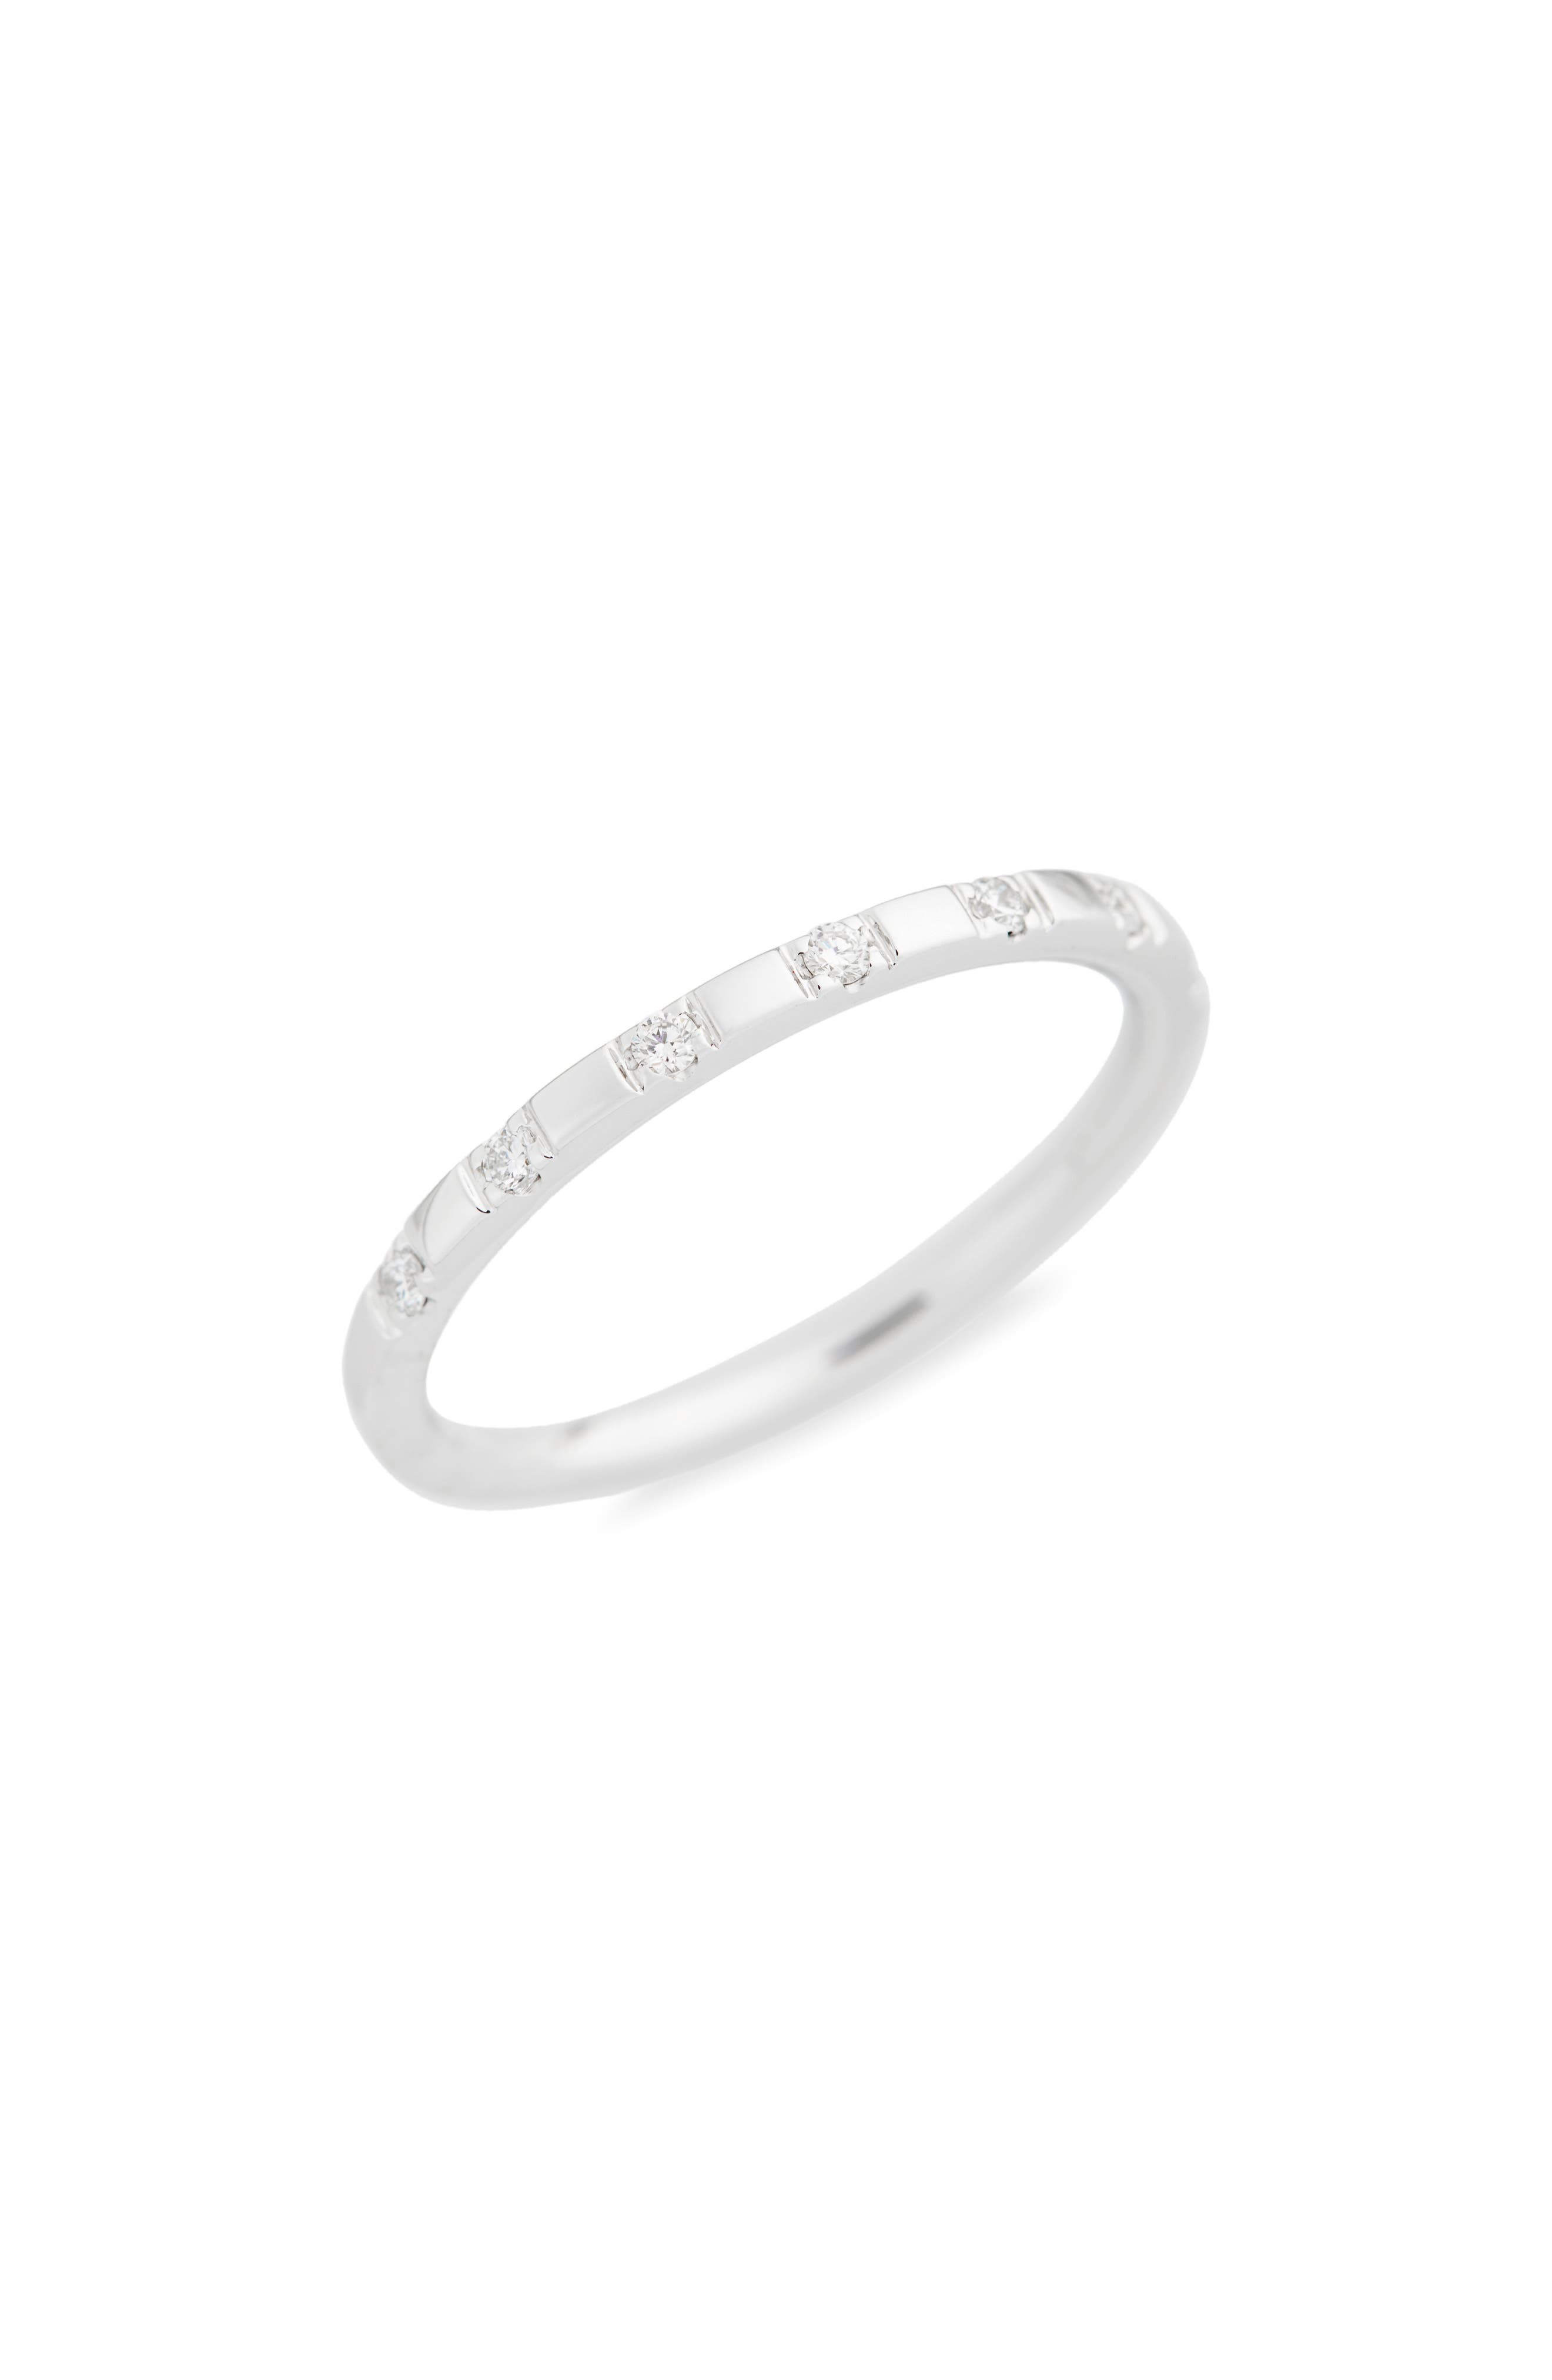 Prism Large Stackable Diamond Ring,                         Main,                         color, White Gold